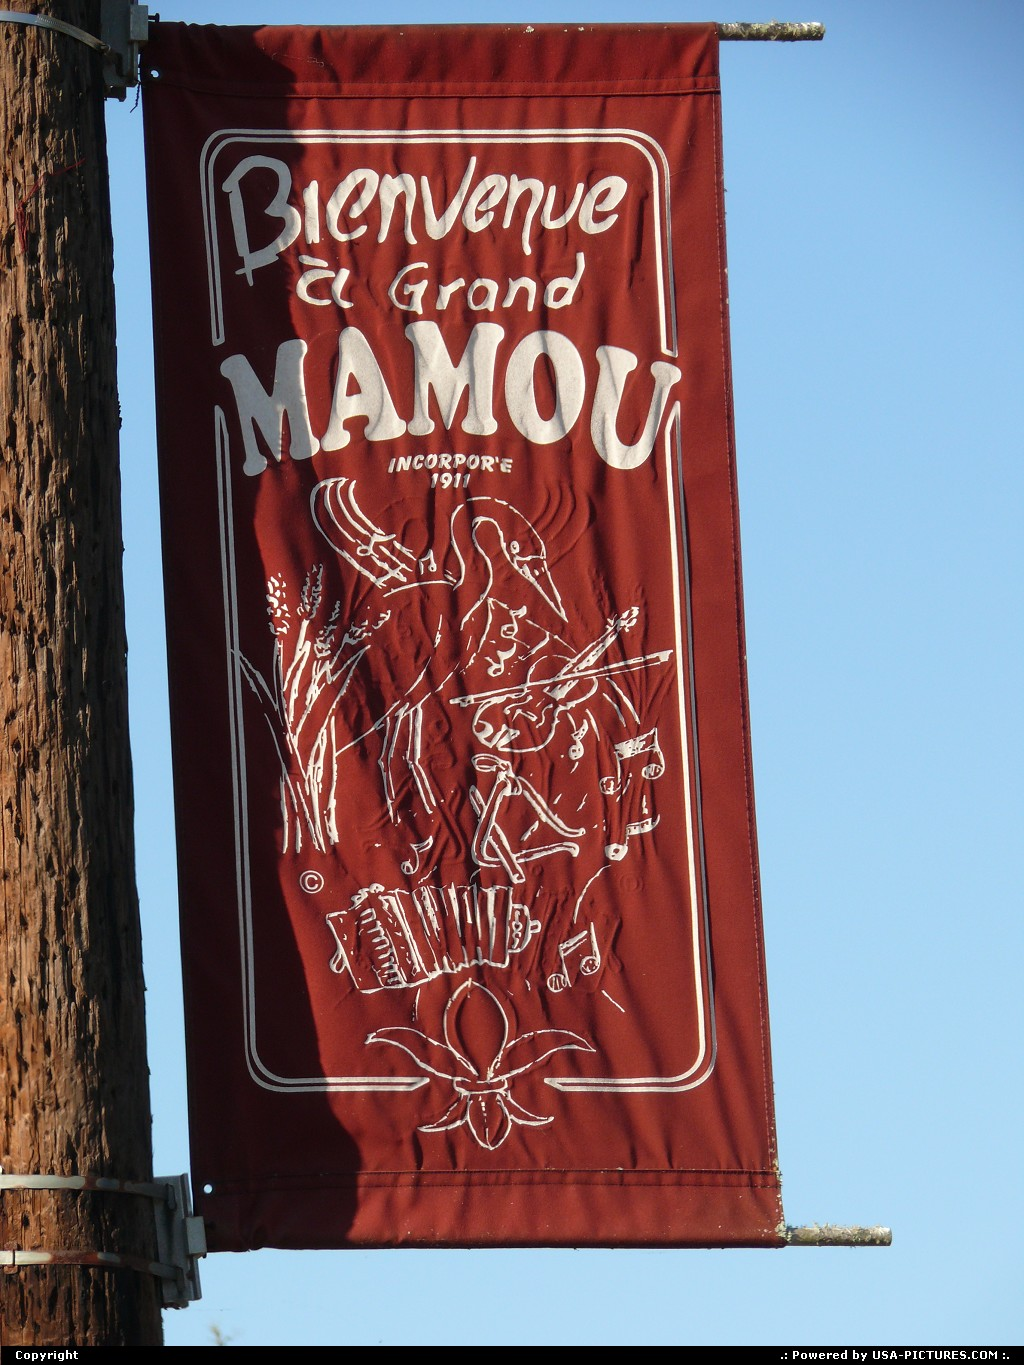 Picture by Bernie: Mamou Louisiana